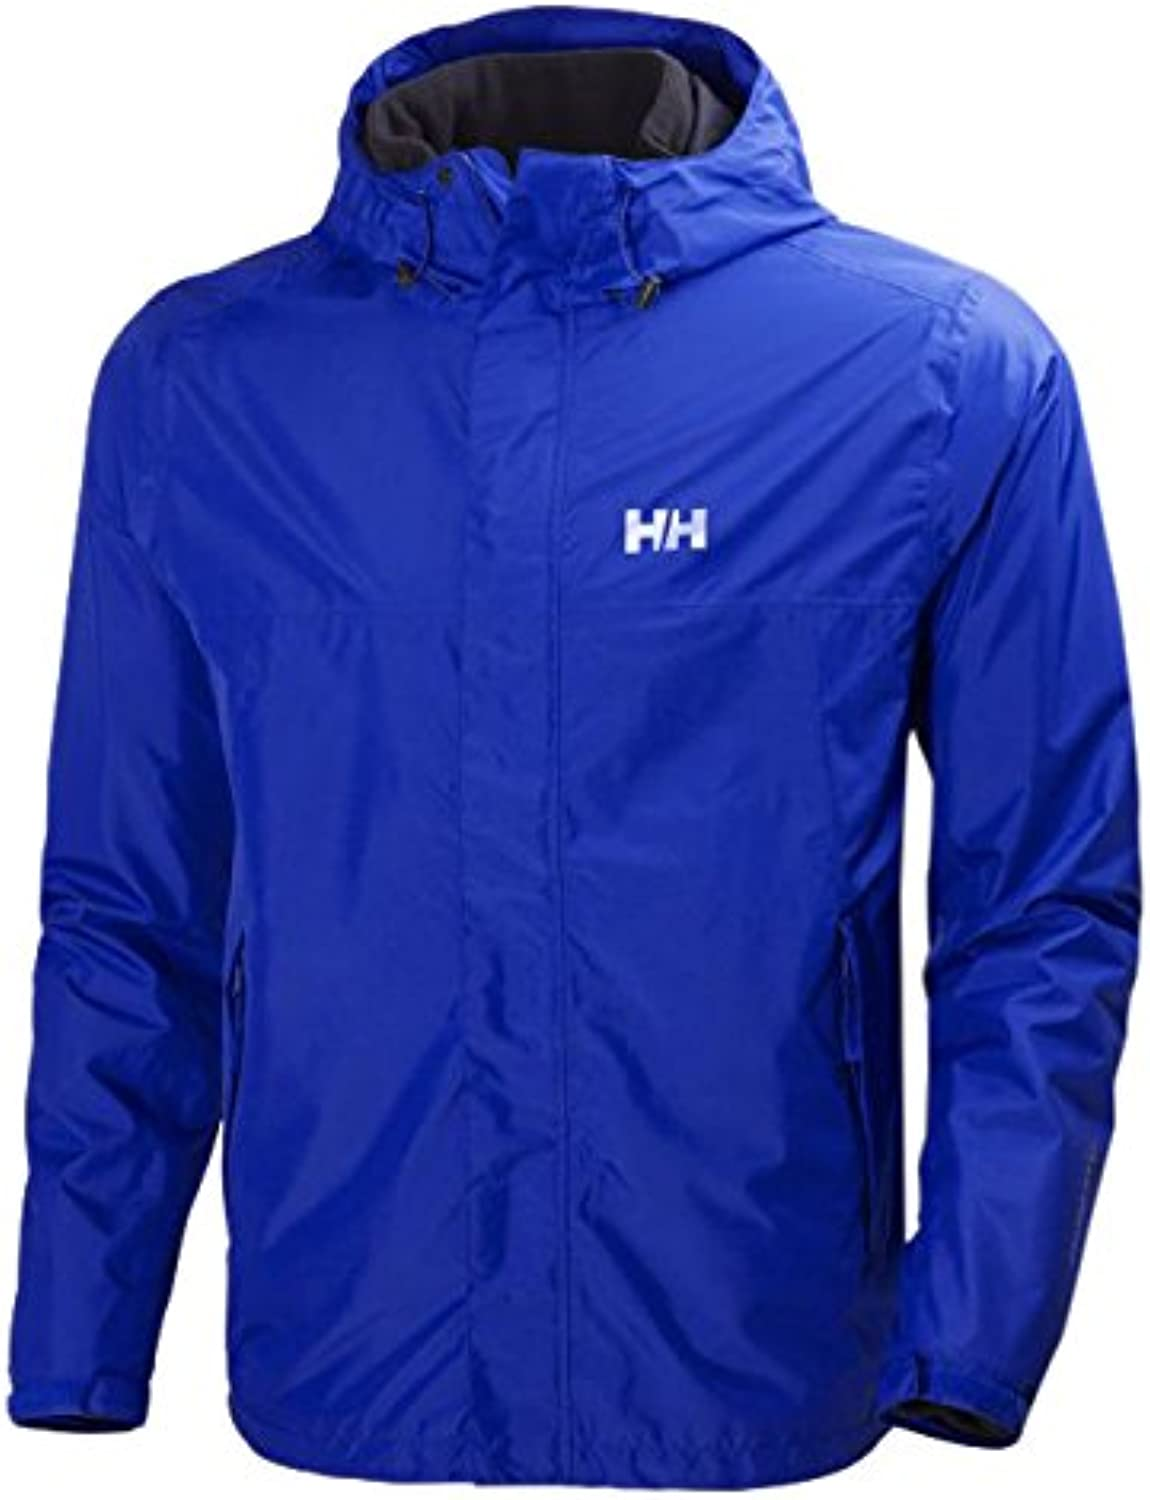 Helly Hansen Men's Hustad CIS 3-in-1 Insulated Rain Jacket